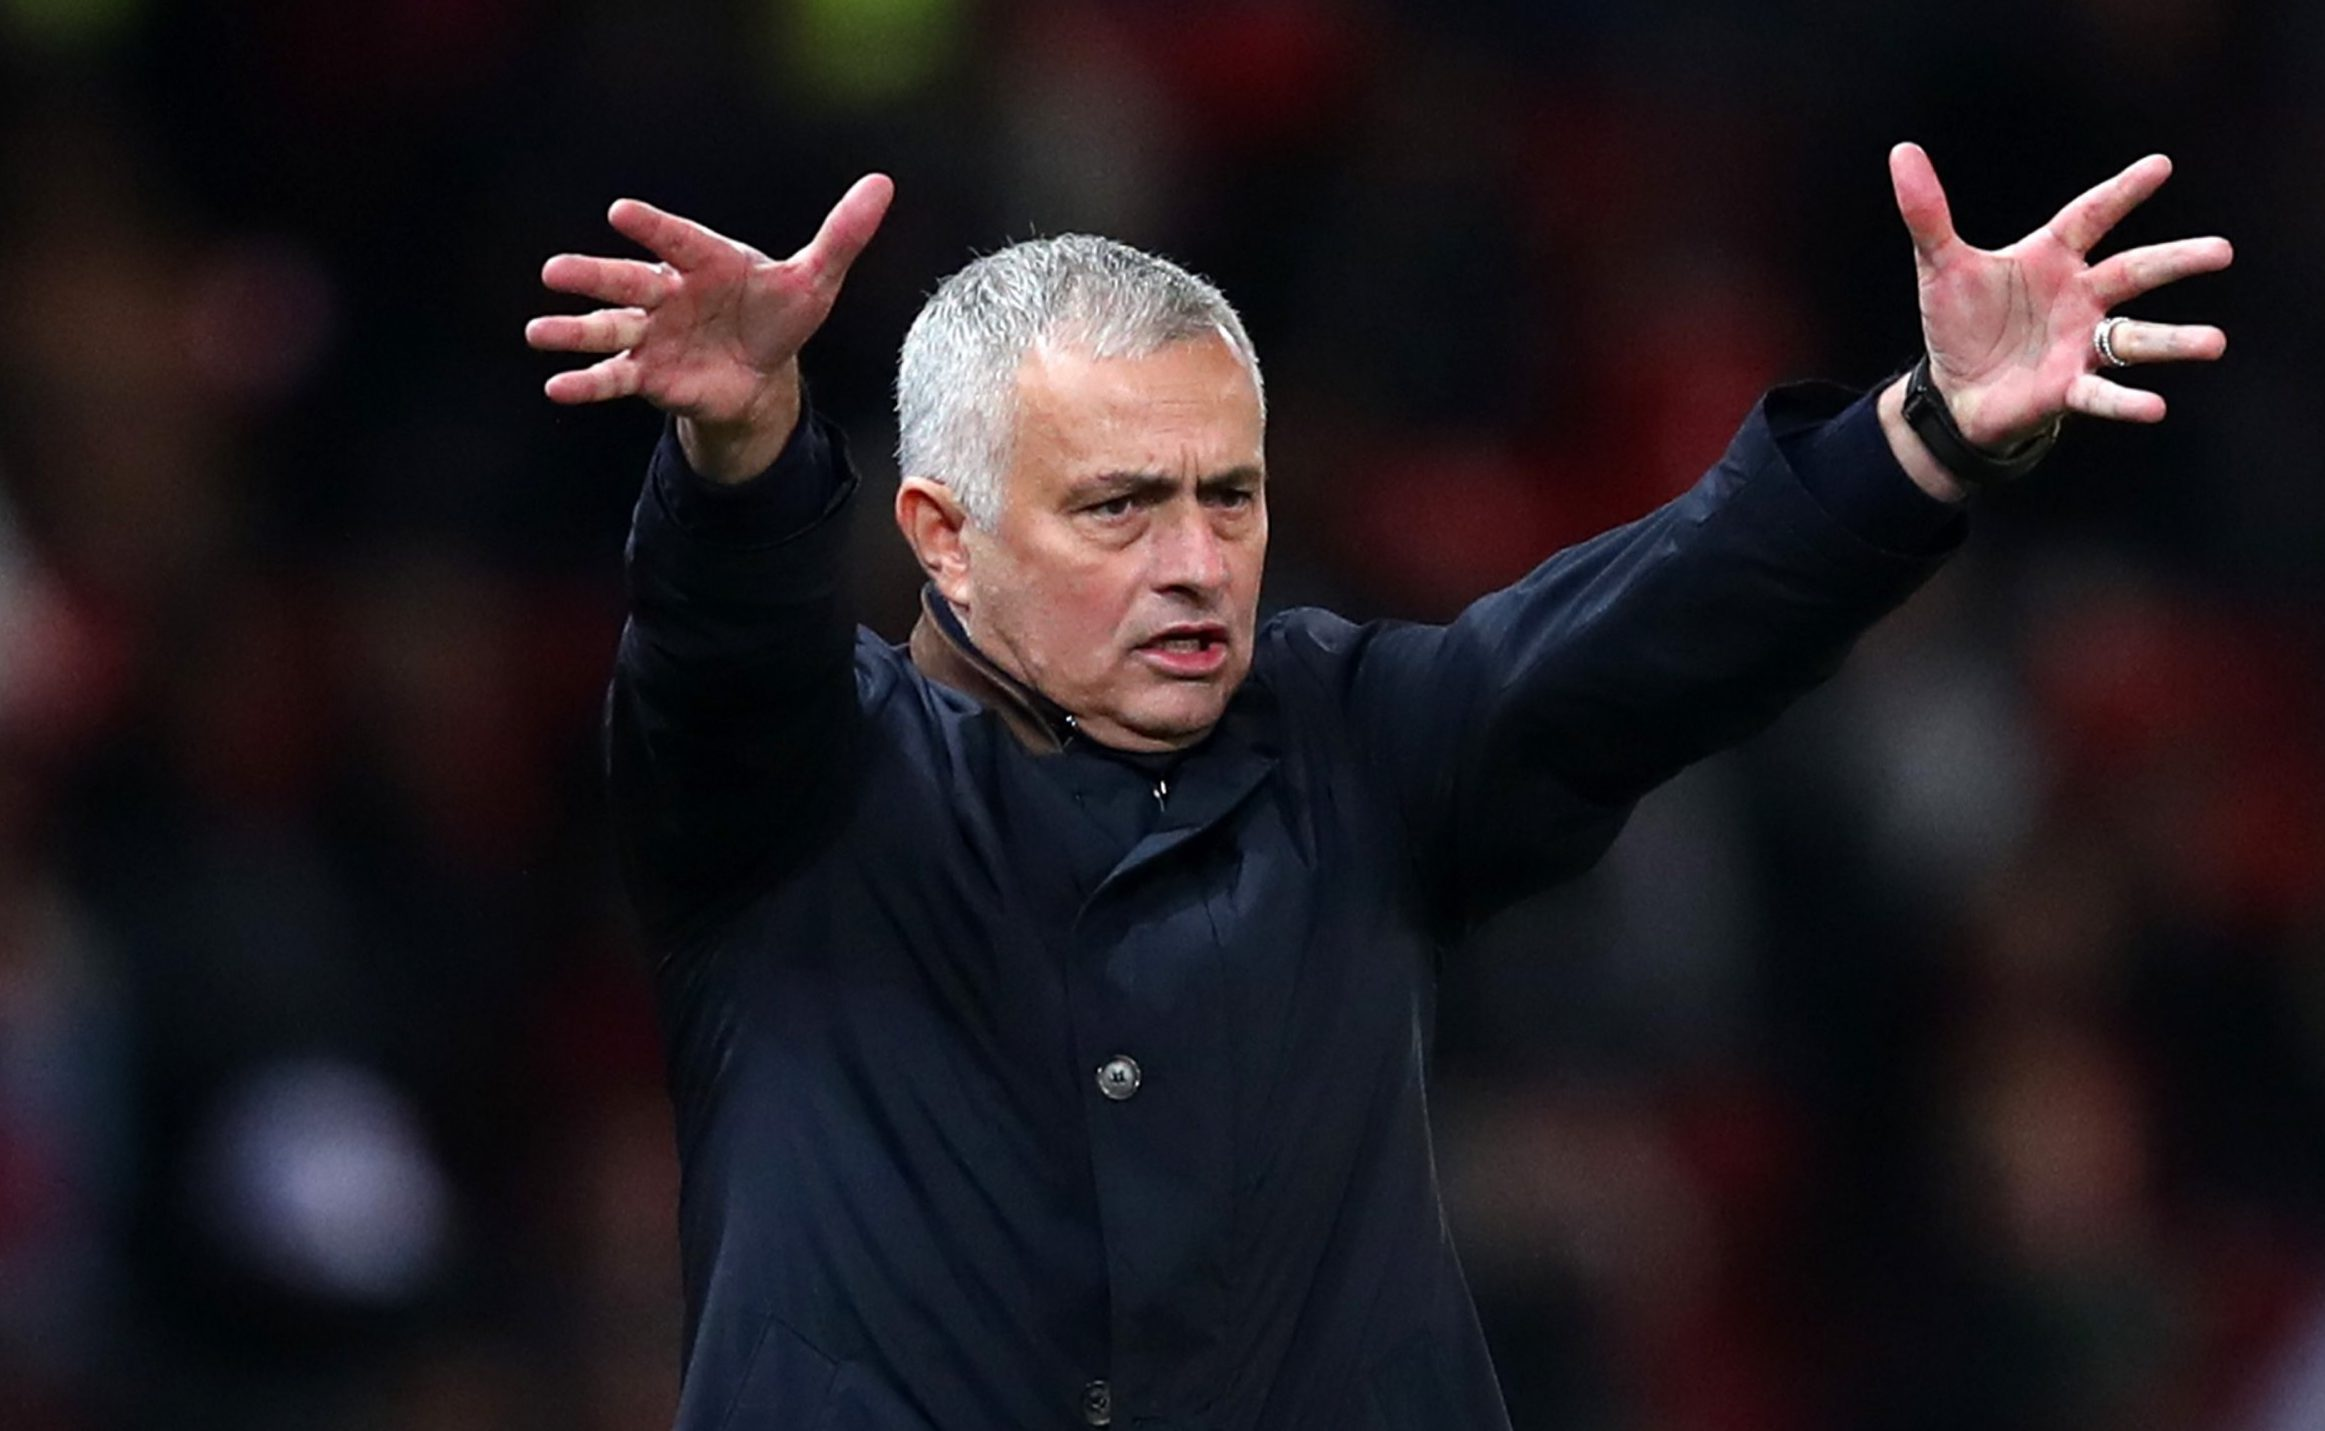 Jose Mourinho defends his reaction to Marcus Rashford's miss after Manchester United's win over Young Boys